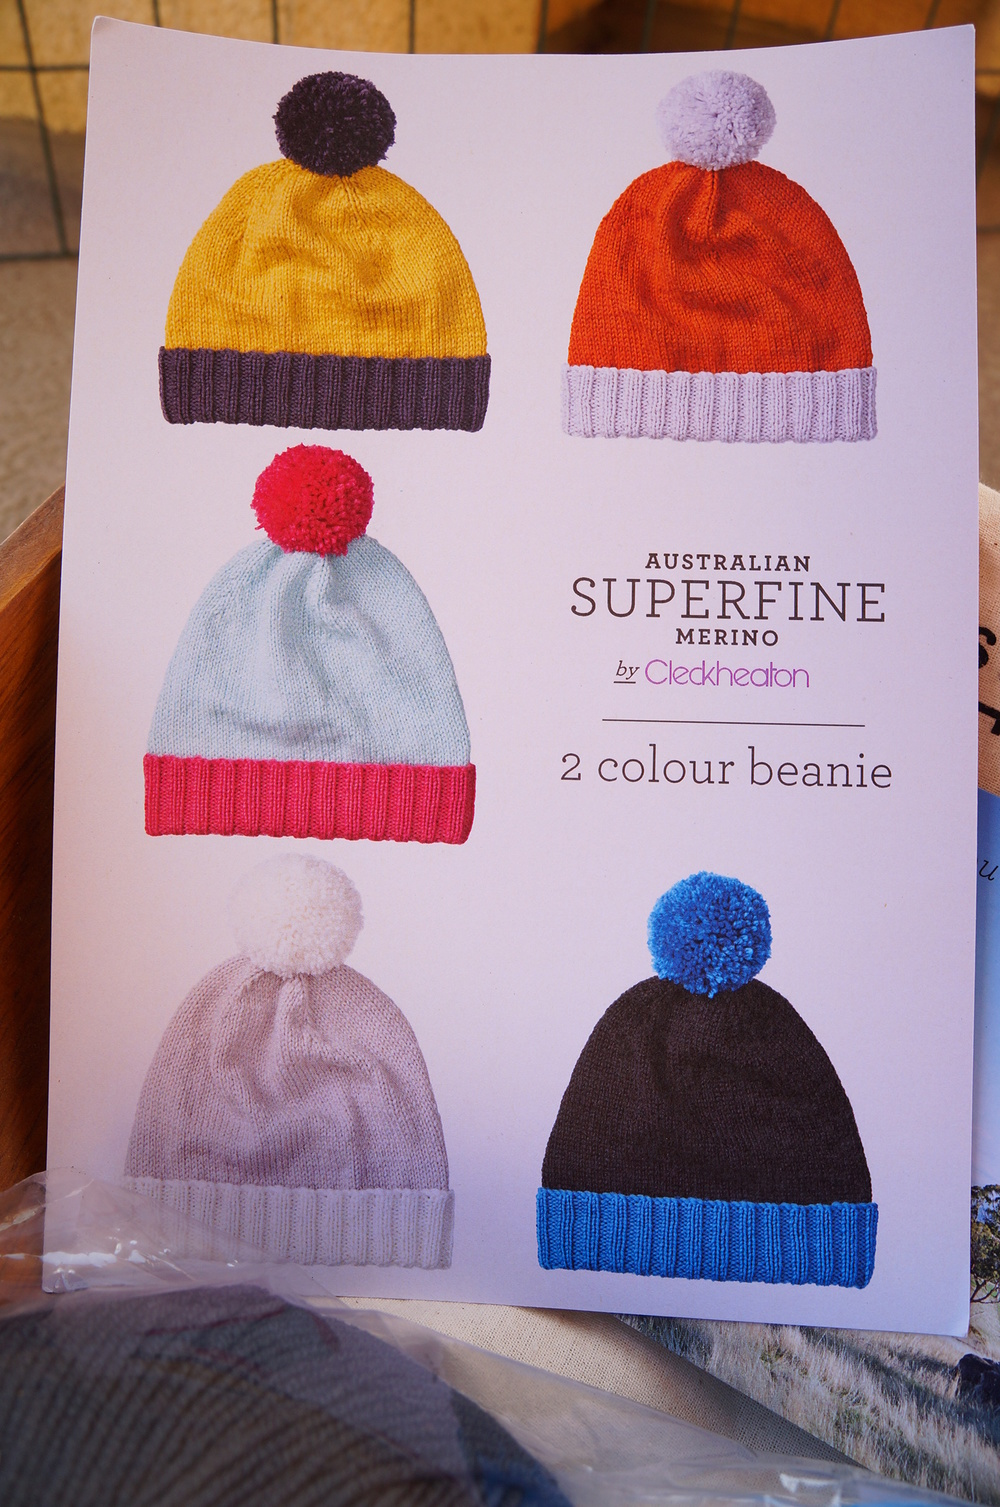 FREE pattern from Cleckheaton website: 2-Colour Beanie in Australian Superfine Merino